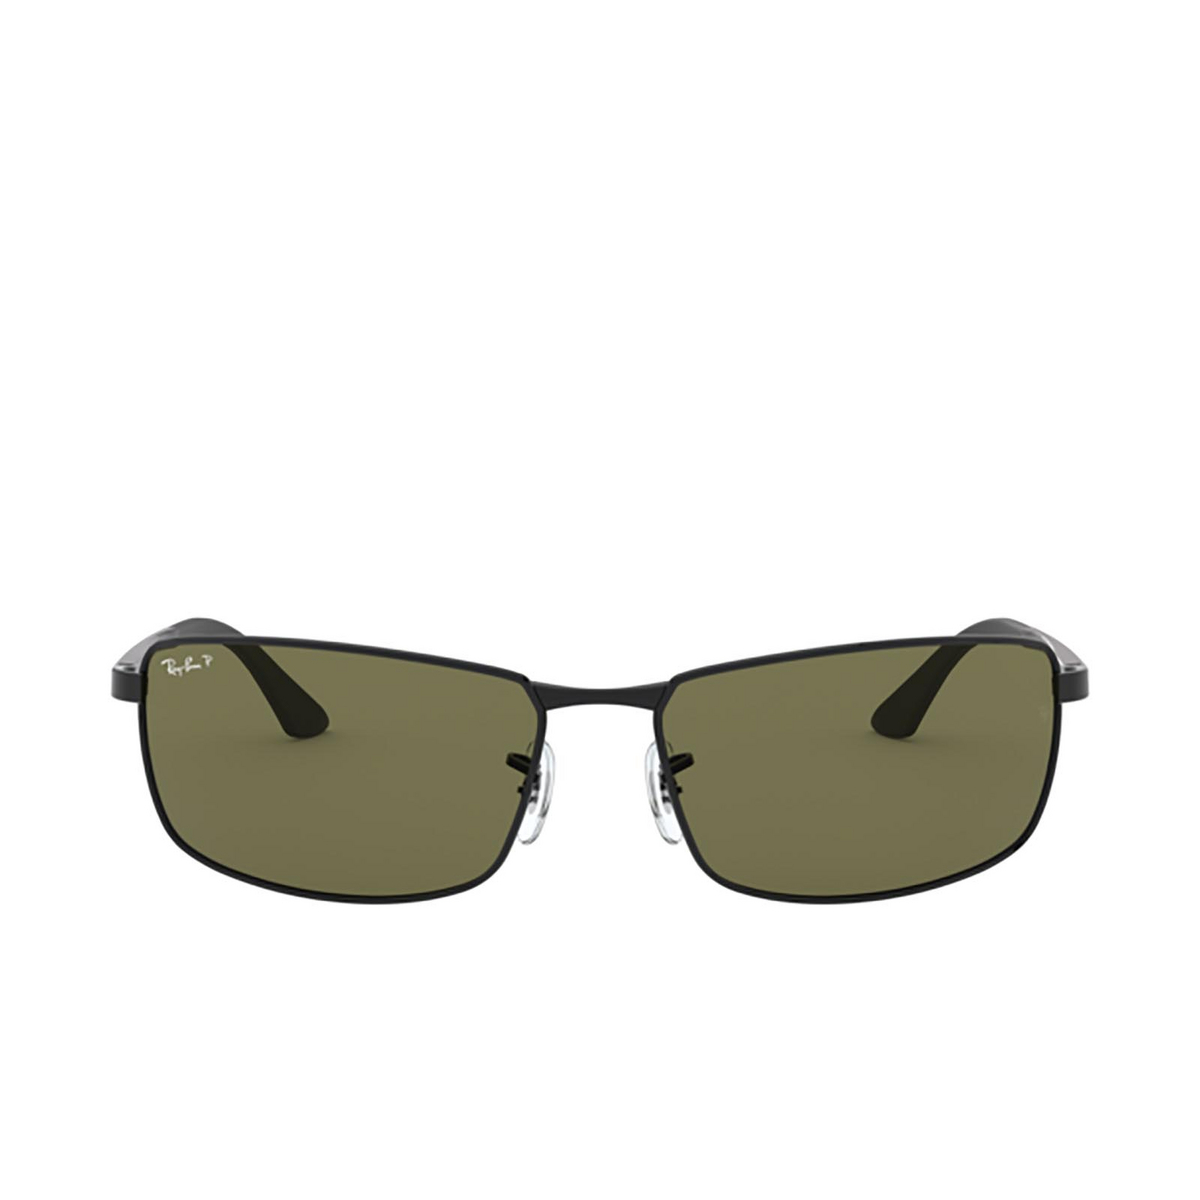 Ray-Ban® Rectangle Sunglasses: N/a RB3498 color Black 002/9A - 1/3.